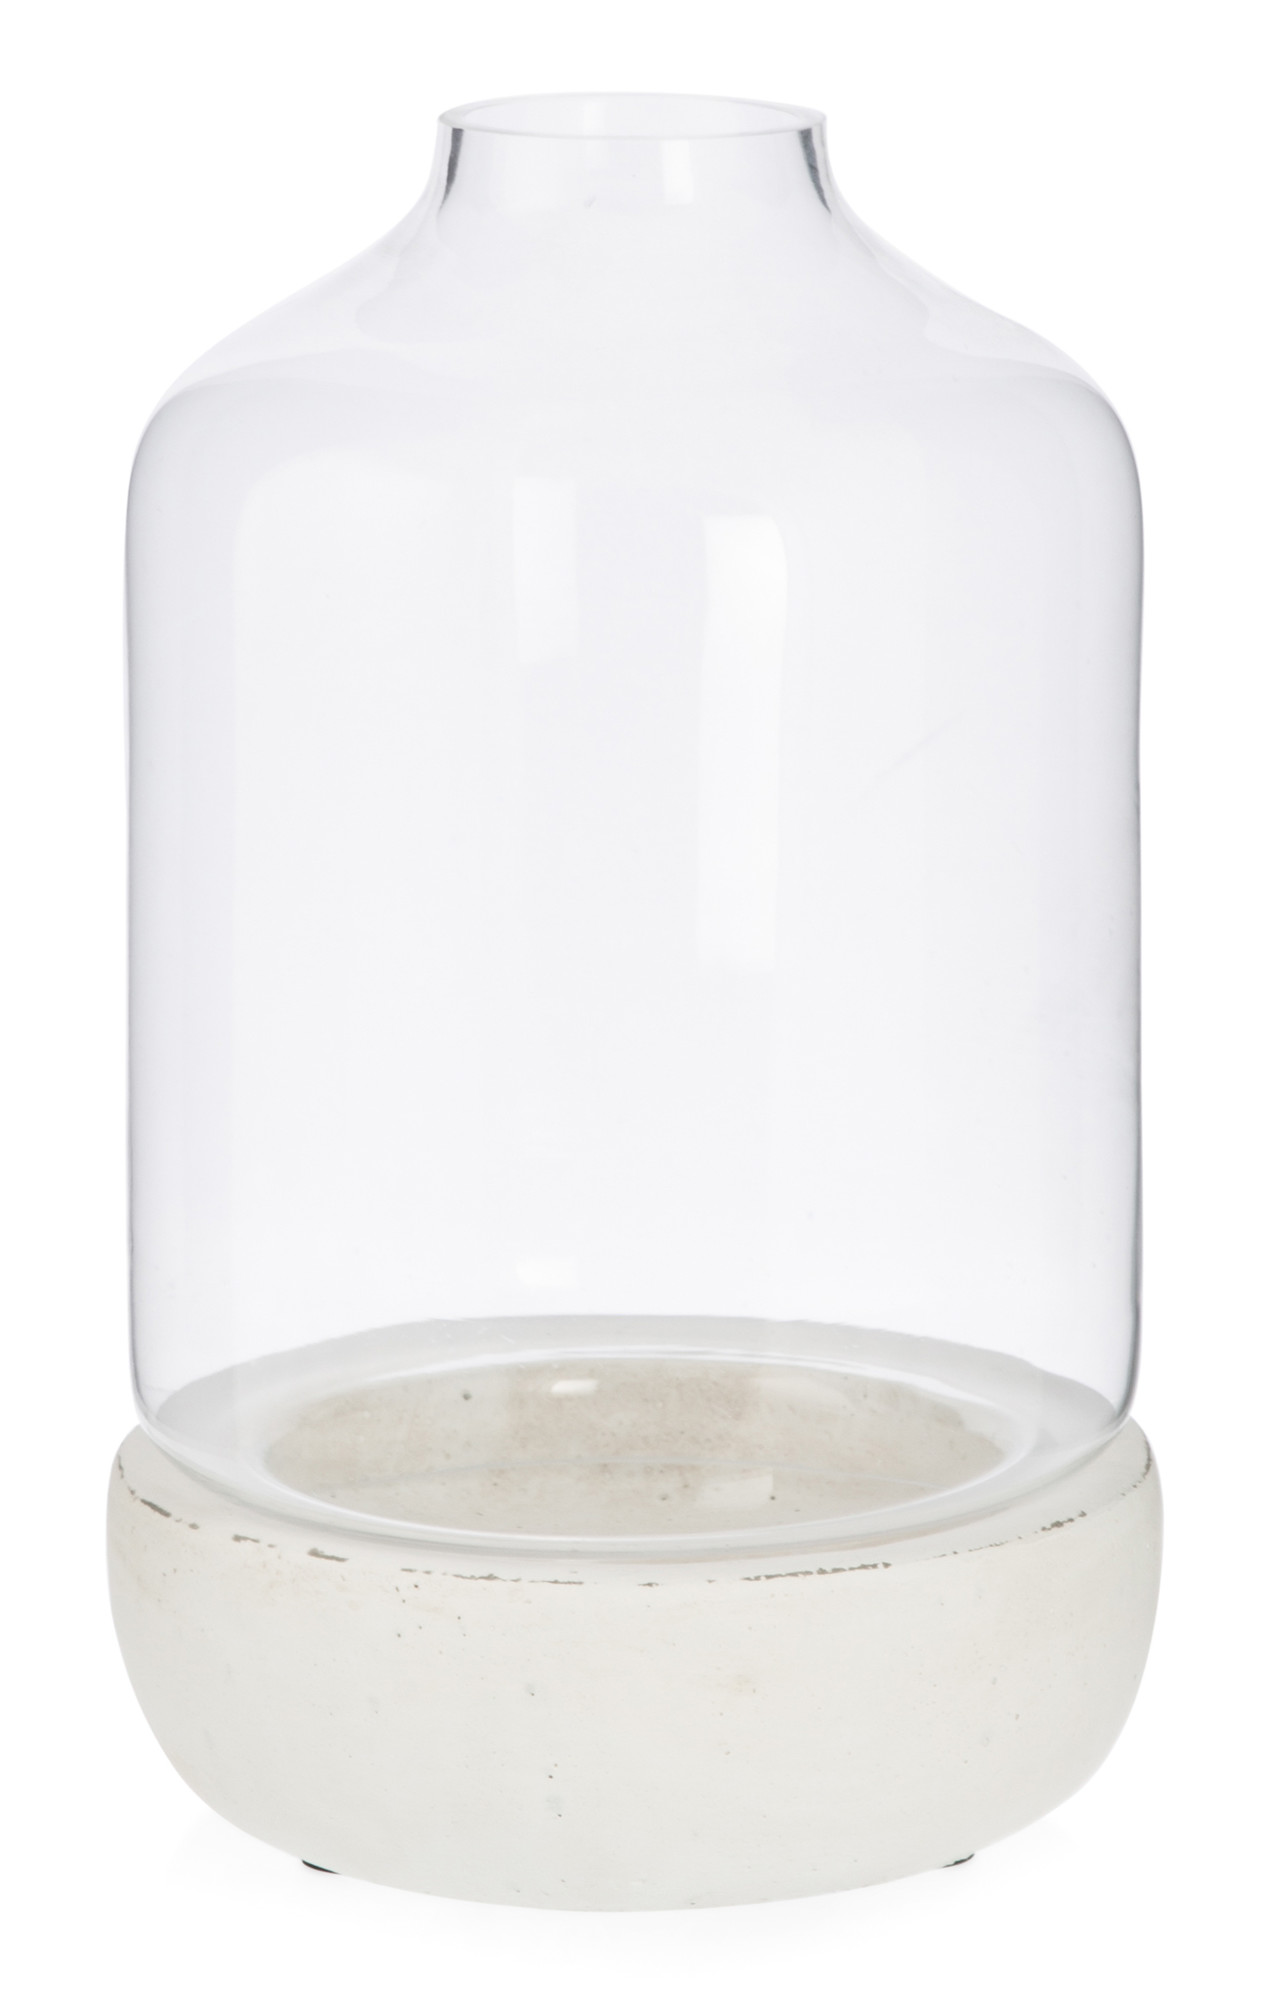 NEW-Glass-Dome-Hurricane-Lamp-with-Cement-Base